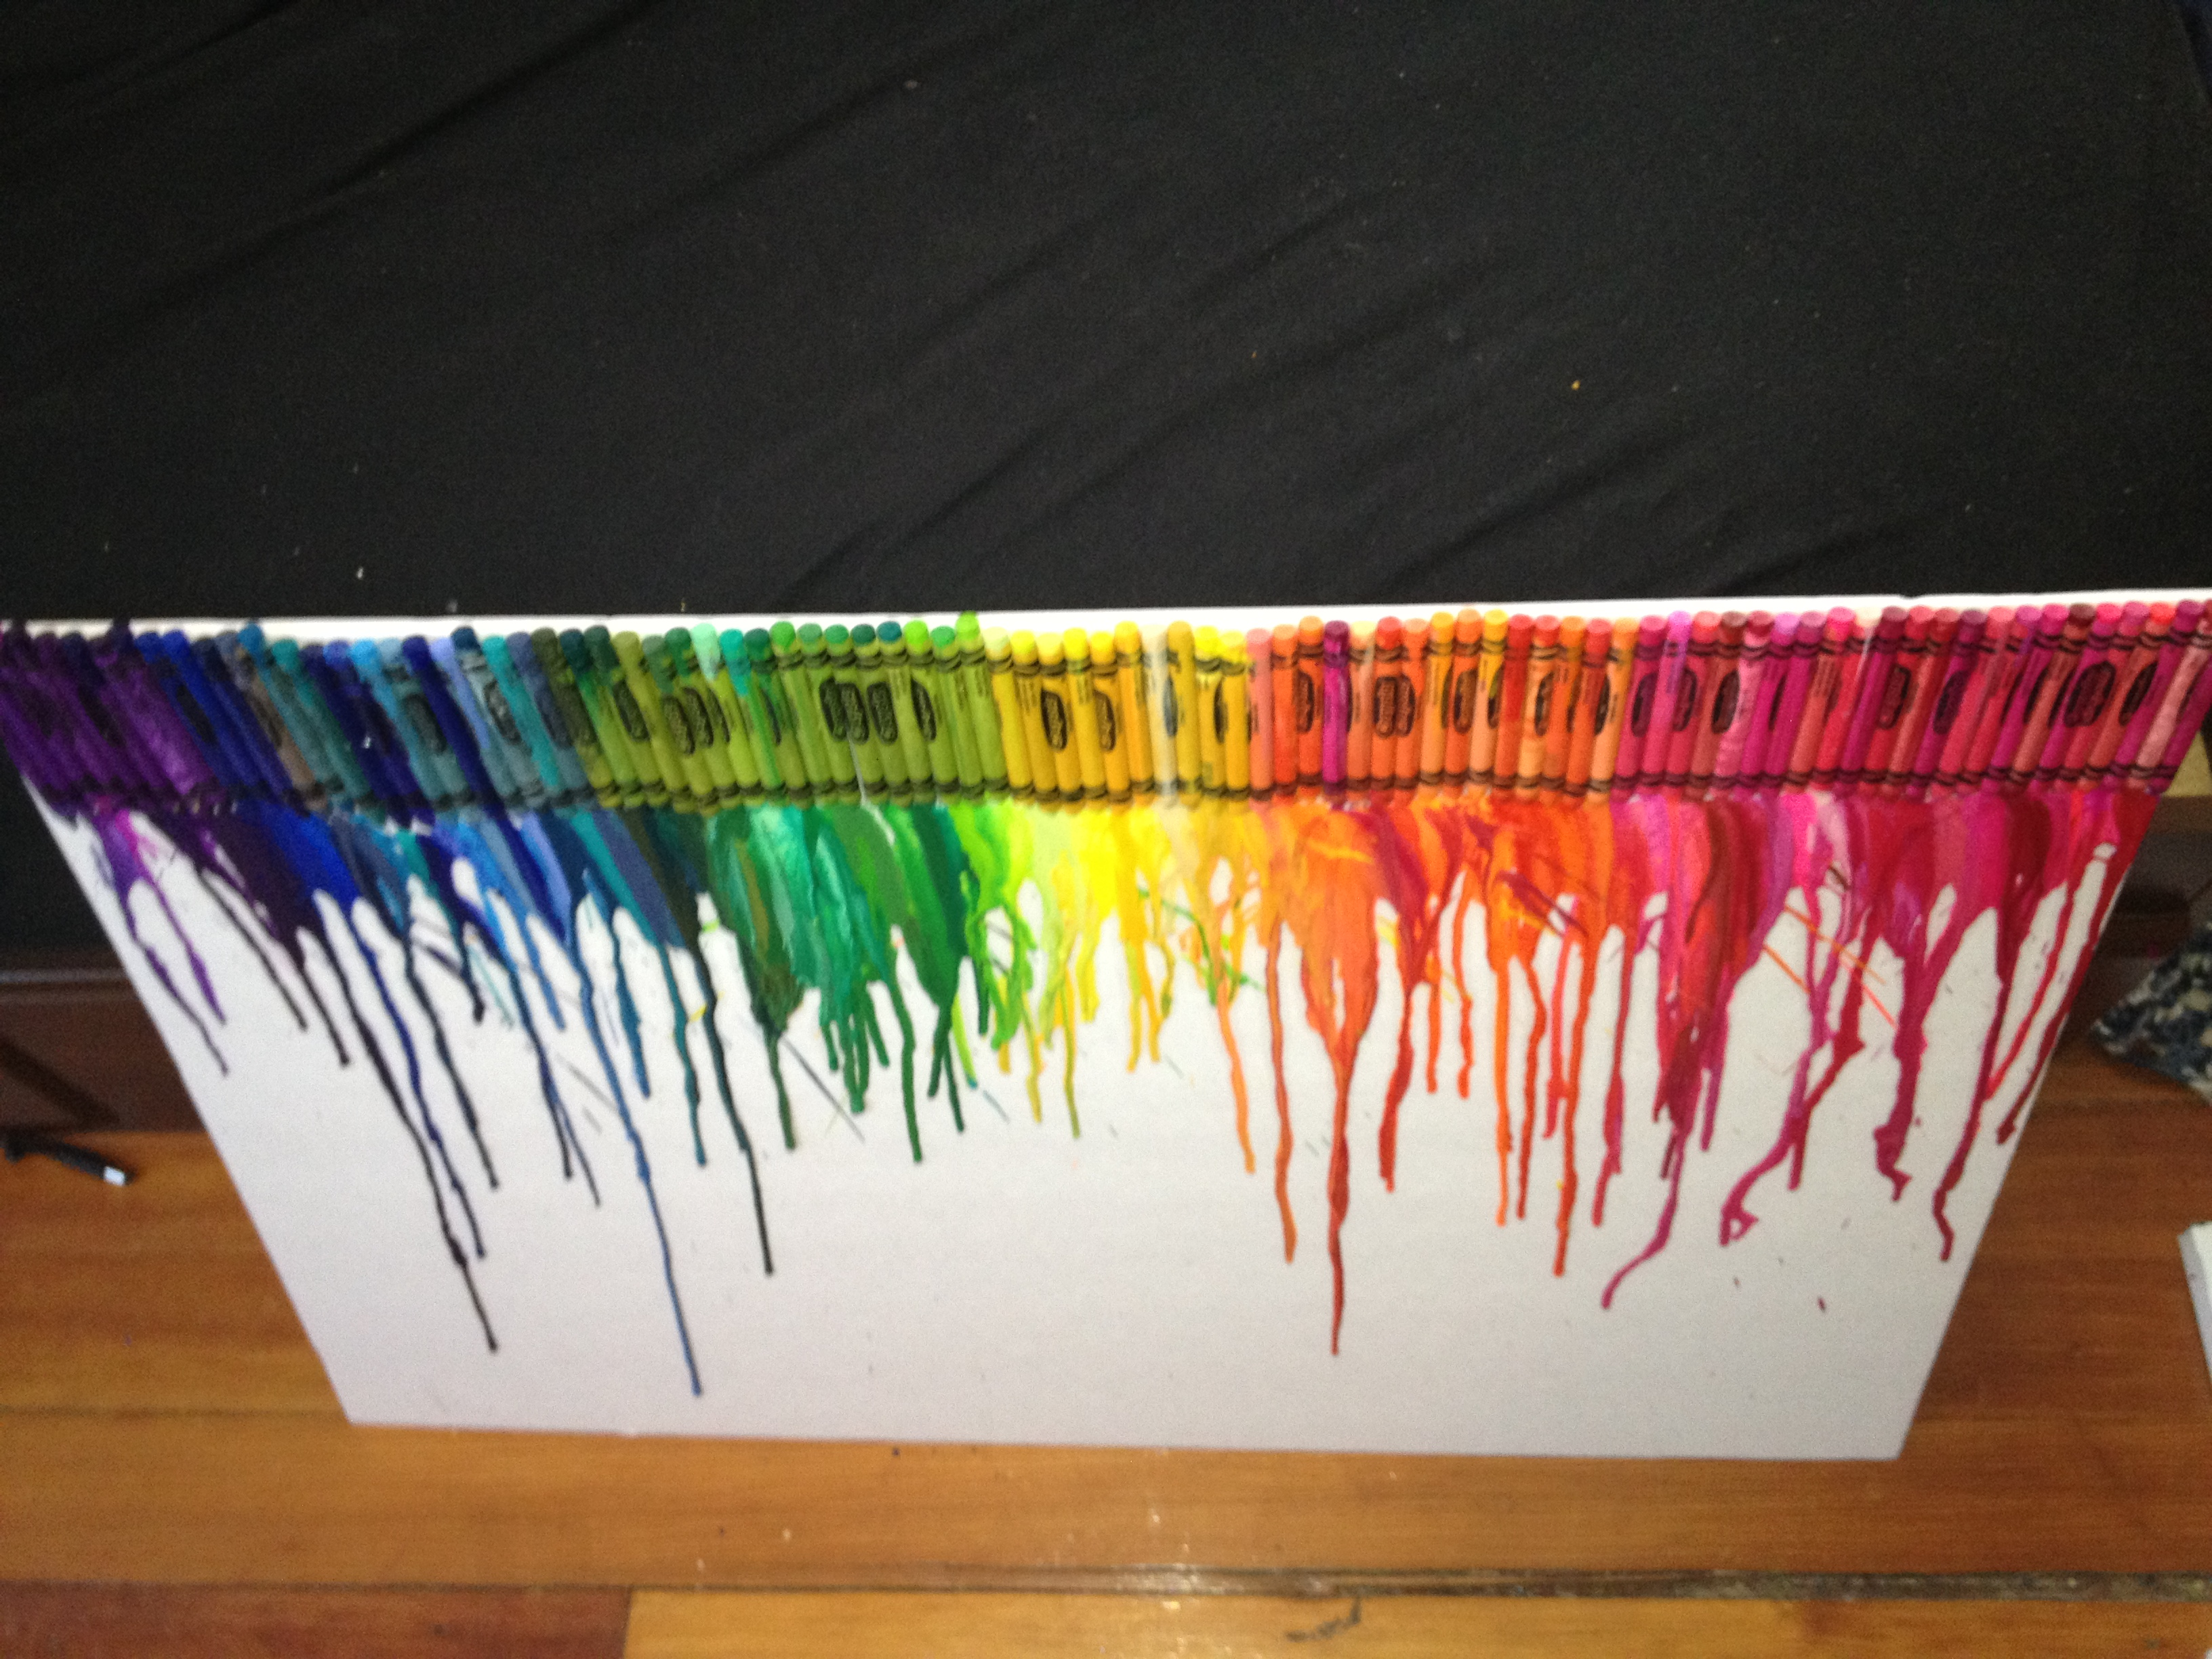 crayon art on cardboard